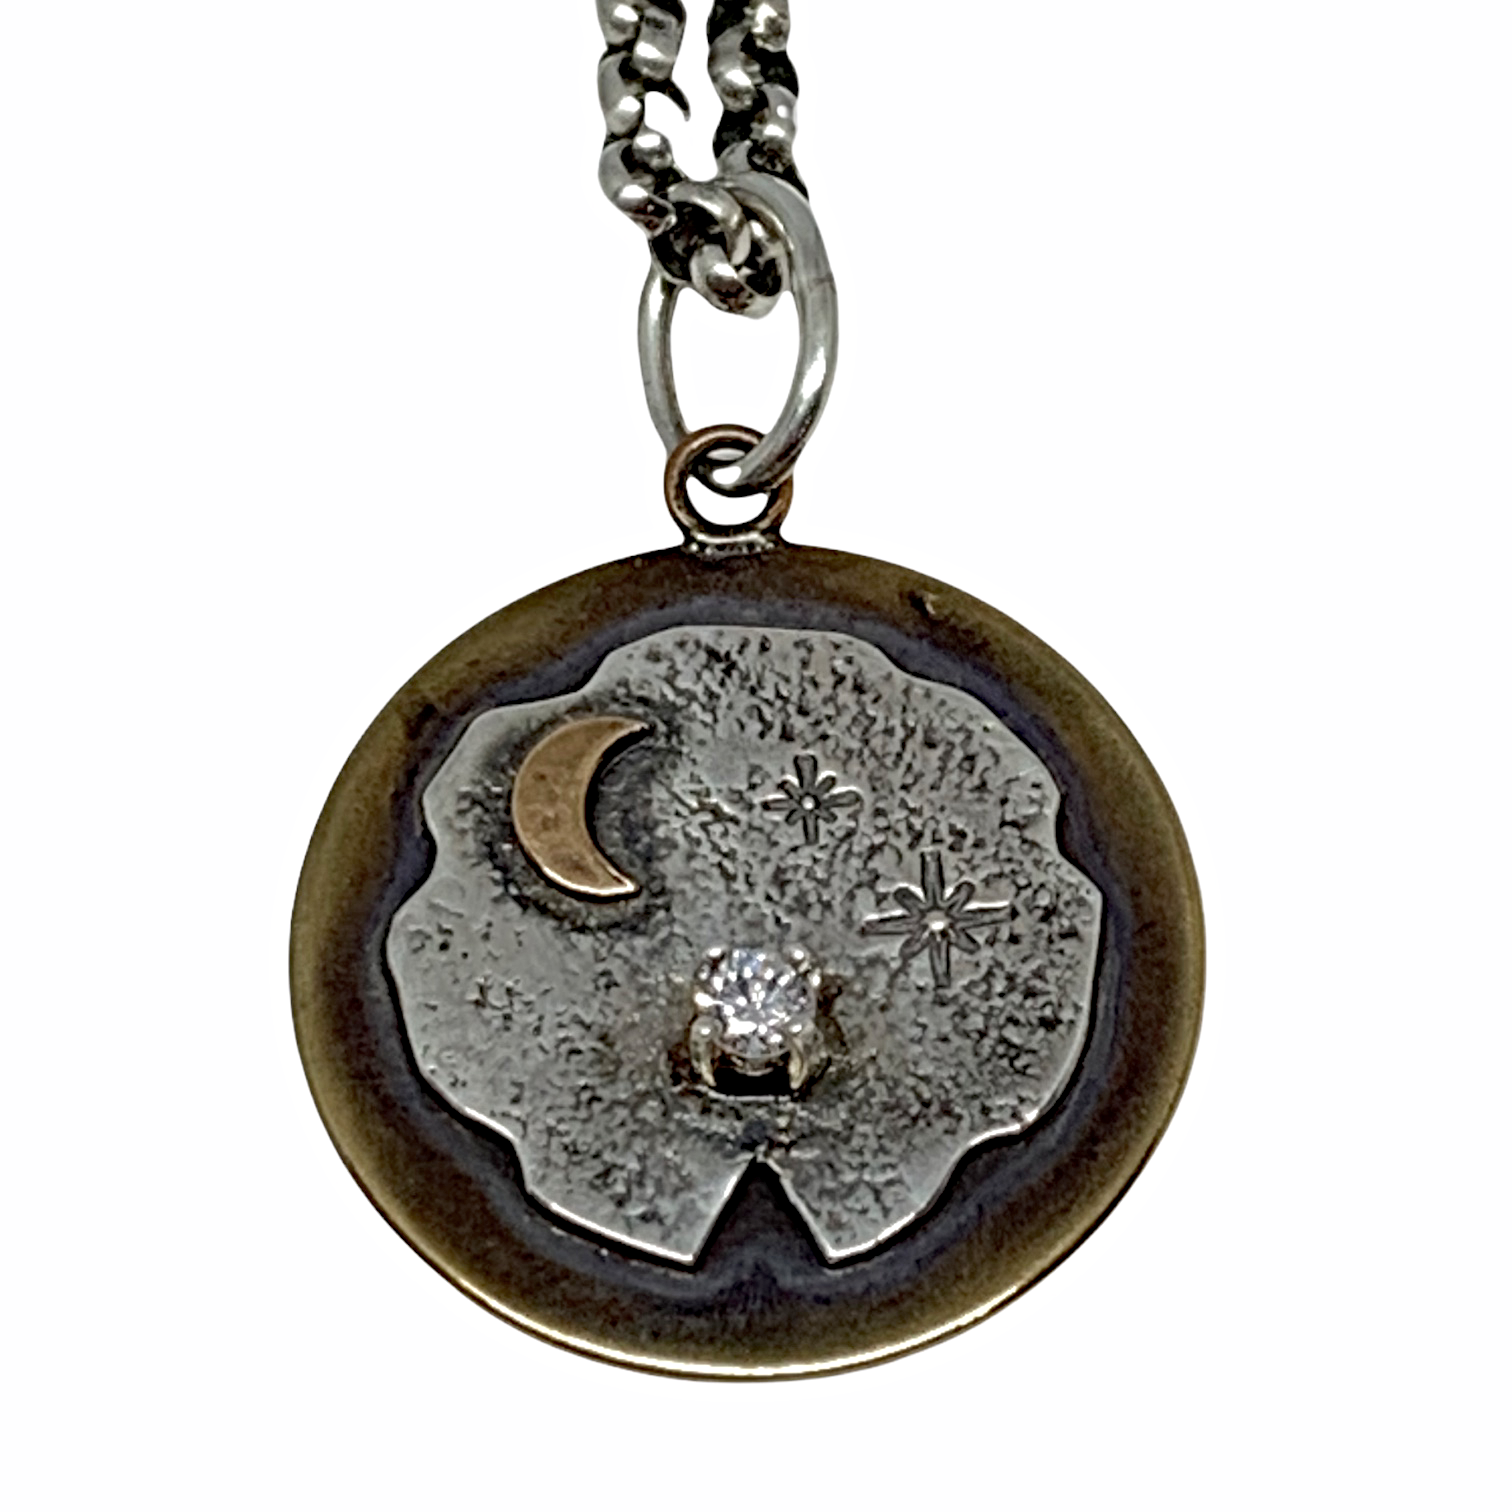 Handmade sterling silver, bronze, and CZ celestial pendant  by Karyn Chopik | Effusion Art Gallery + Cast Glass Studio, Invermere BC